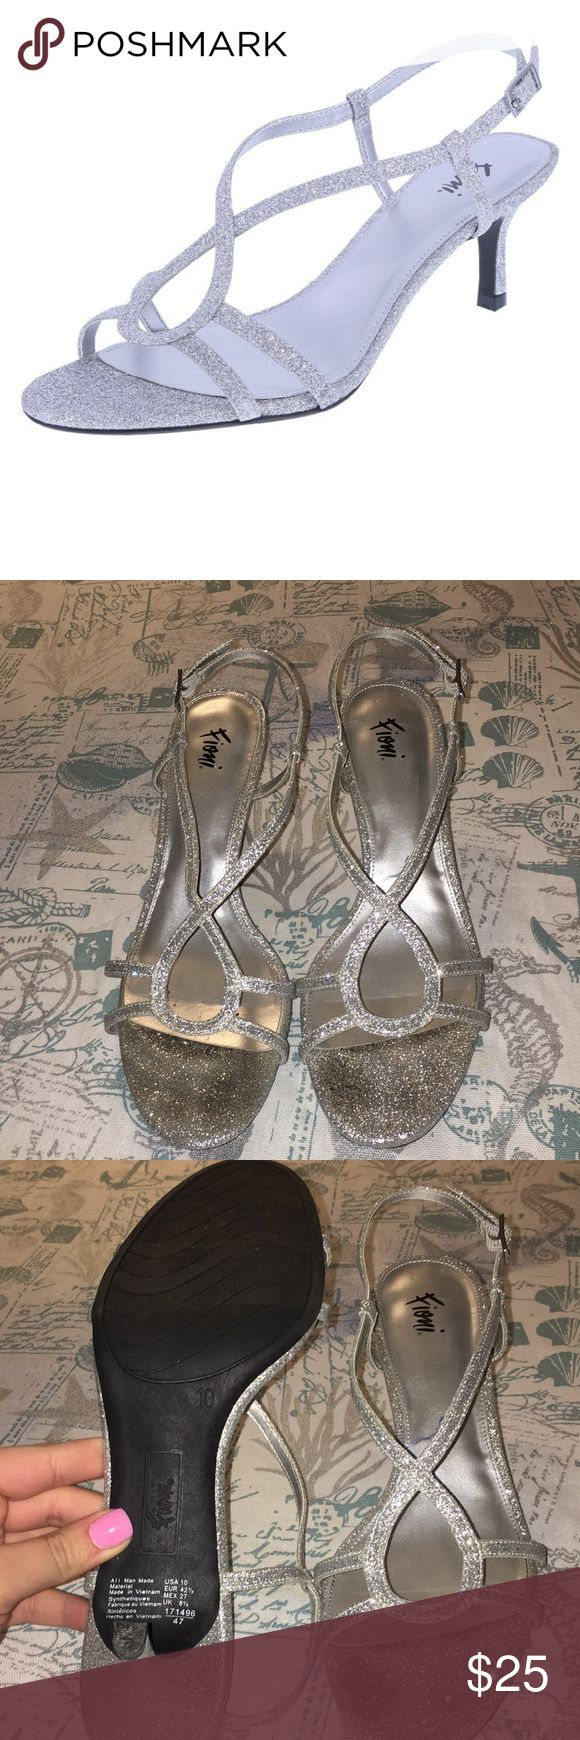 Fioni Silver Sparkly Heels Low 2 1/2 inch kitten Heel Very sparkly Built in cushion  True to size *Worn once for a sweet 16 Payless Shoes Heels